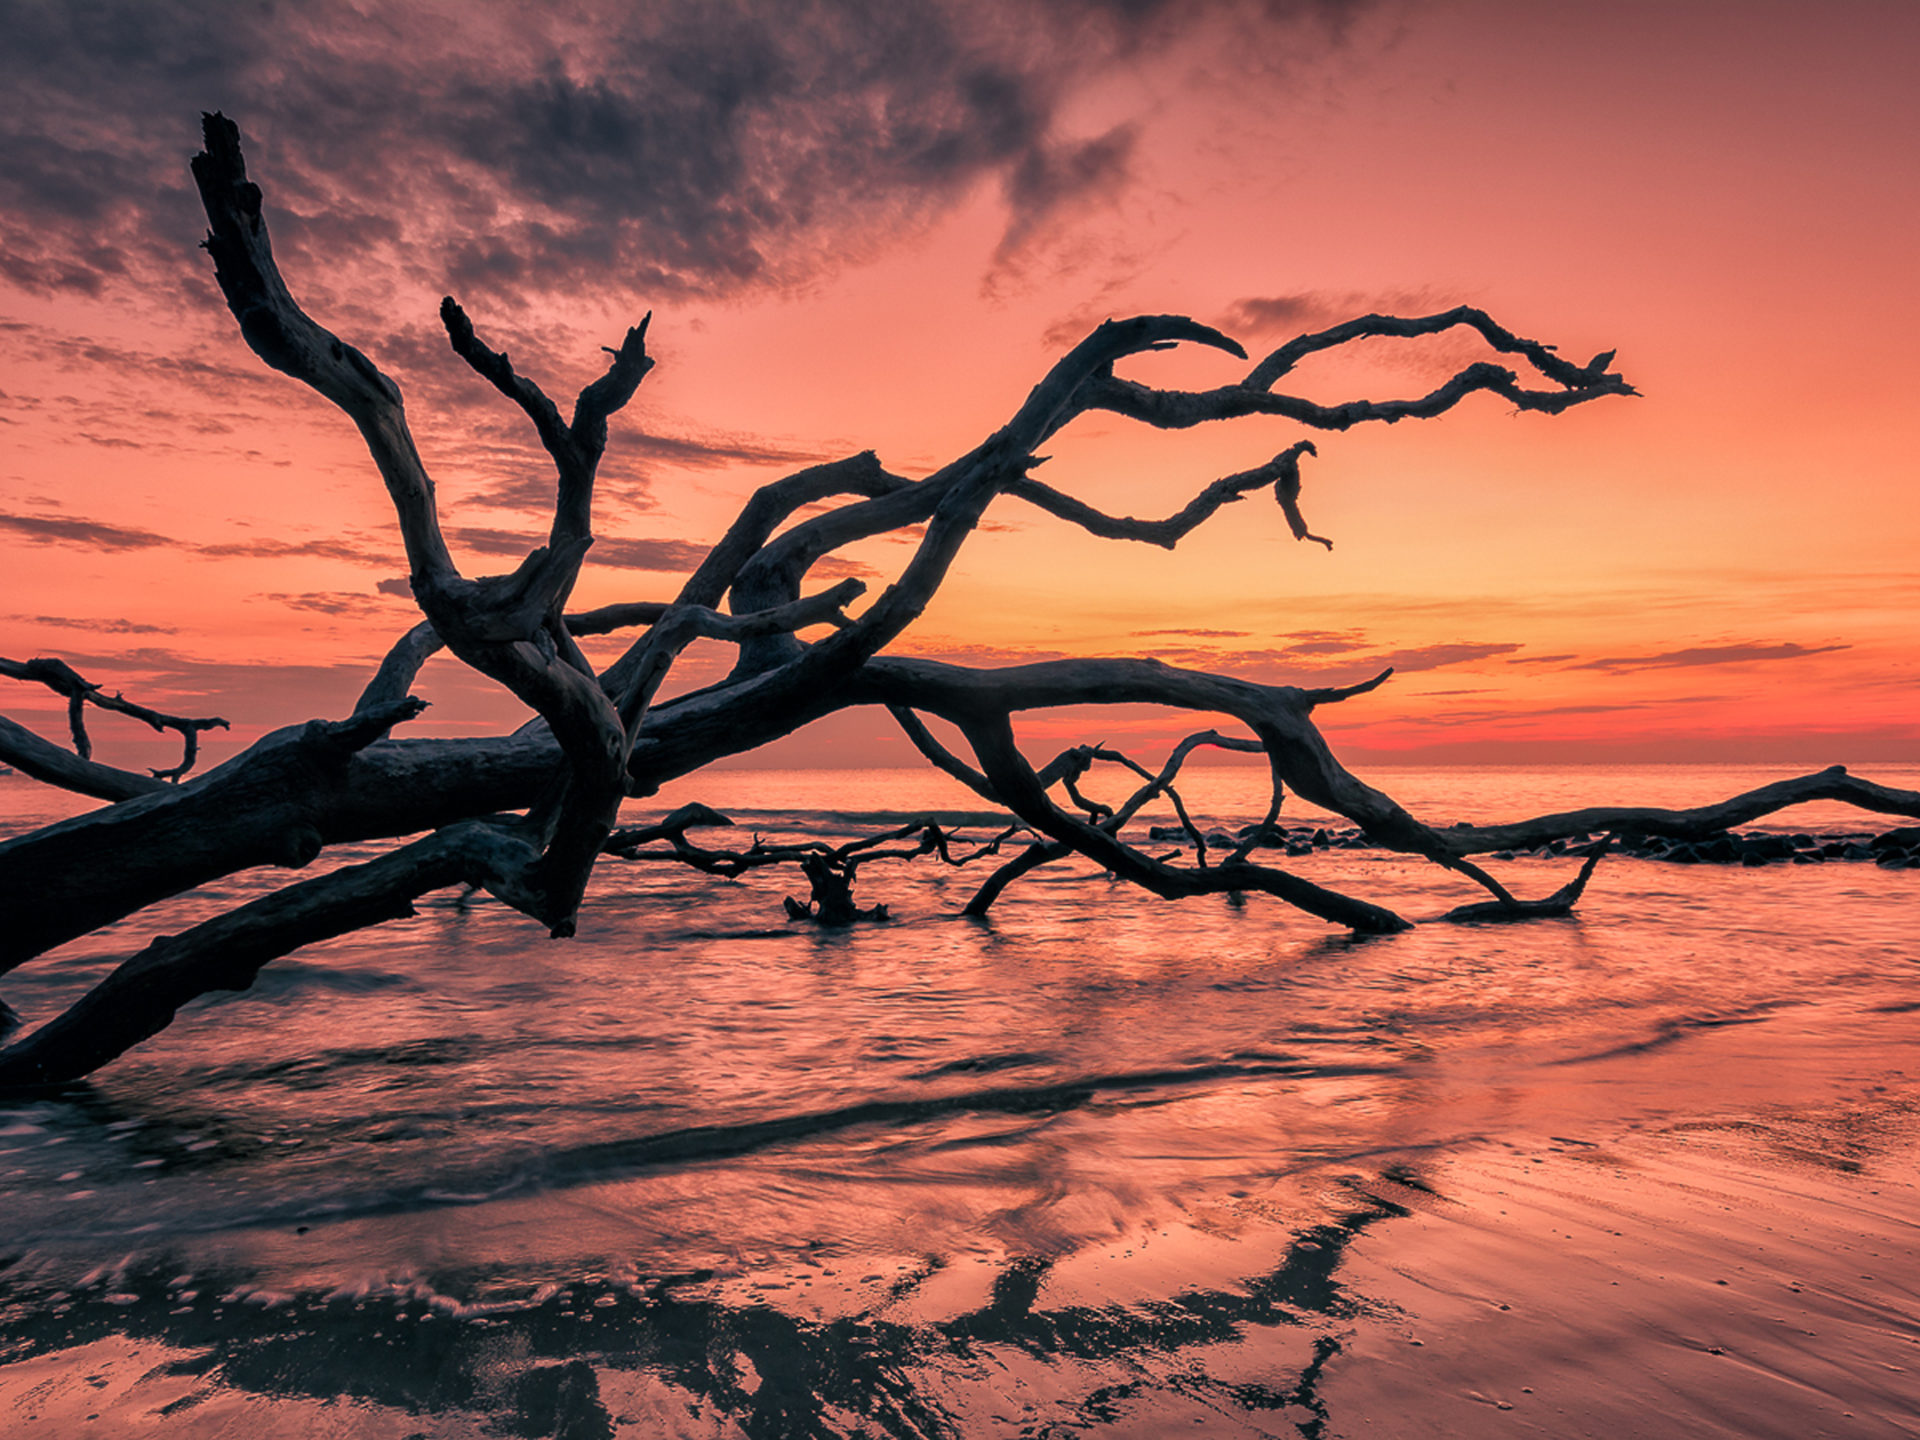 Awesome Hd Wallpapers For Pc Sunset Red Sky Sea Beach Cial Tree Branches Beautiful Hd